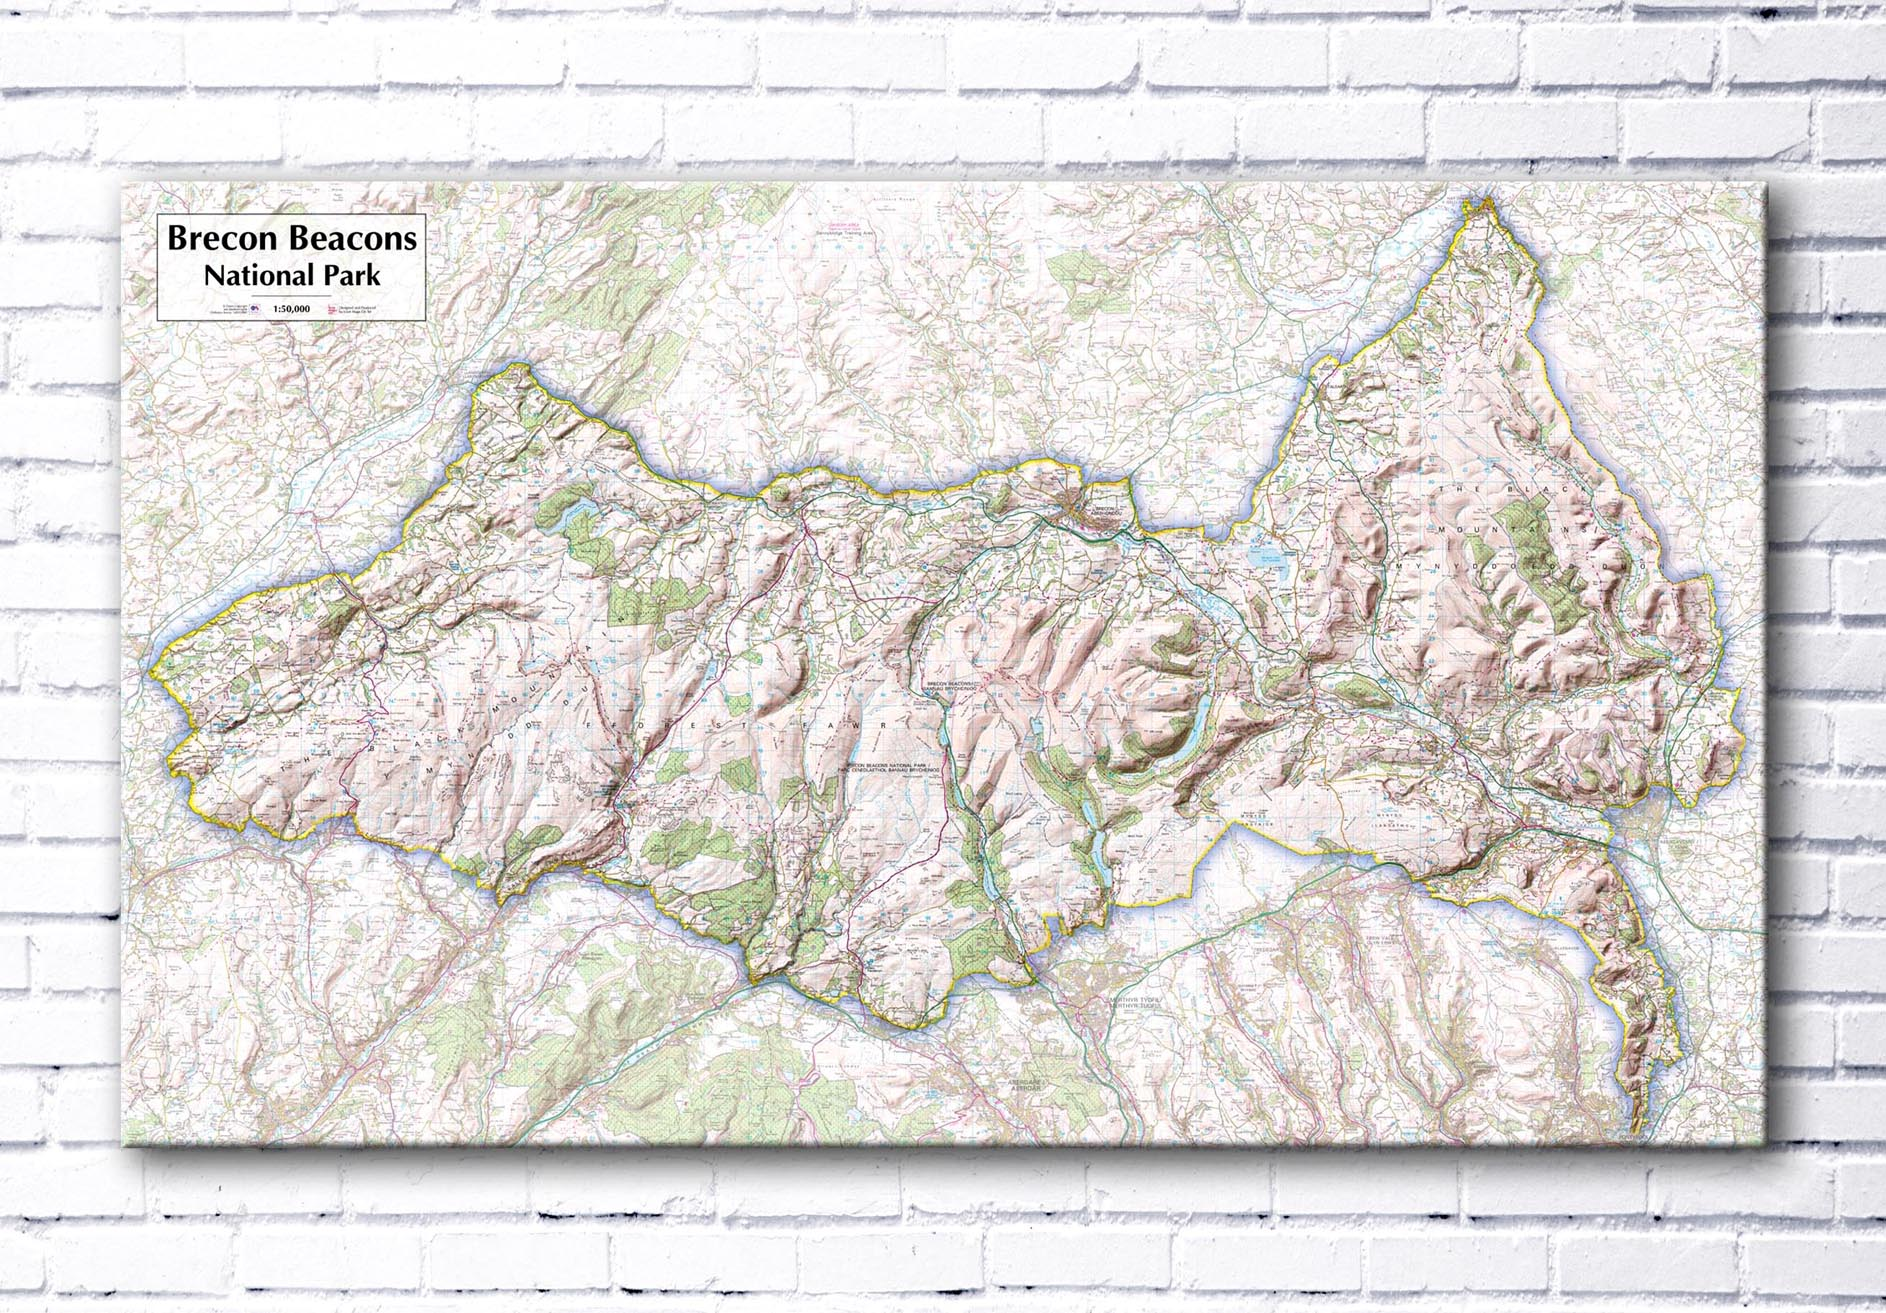 Brecon Beacons National Park - Canvas Print from Maps On... on offa's dyke map, salisbury map, anglesey map, thames path map, mourne mountains map, cardiff map, isles of scilly map, belfast map, somerset map, lake district map, ceredigion map, cambrian mountains map, hemel hempstead map, dartmoor map, ebbw vale map, ben nevis map, great britain map, river severn map, big bend national park map,